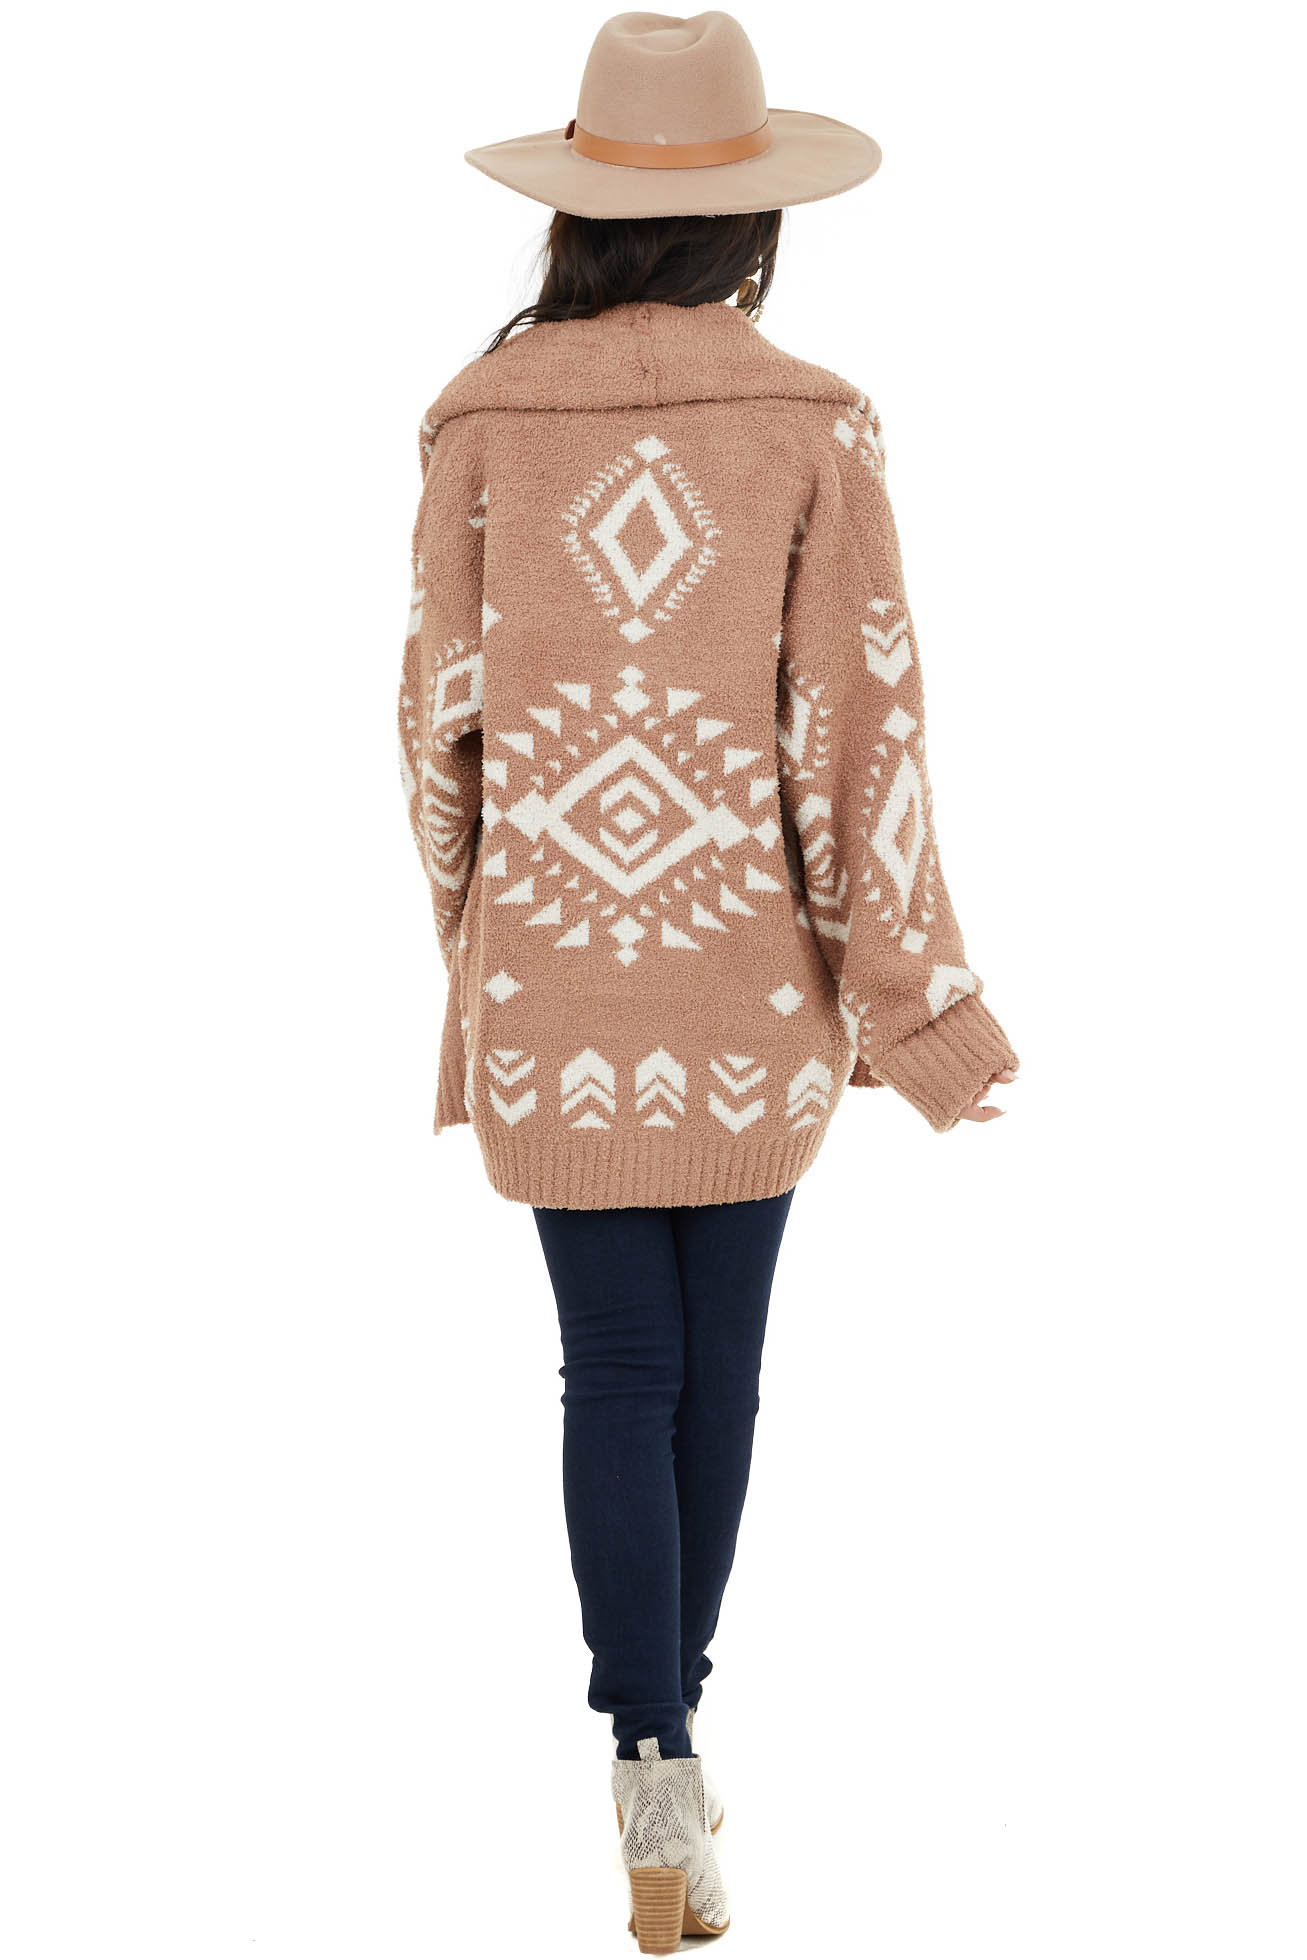 Camel Aztec Print Soft Knit Cocoon Cardigan with Collar